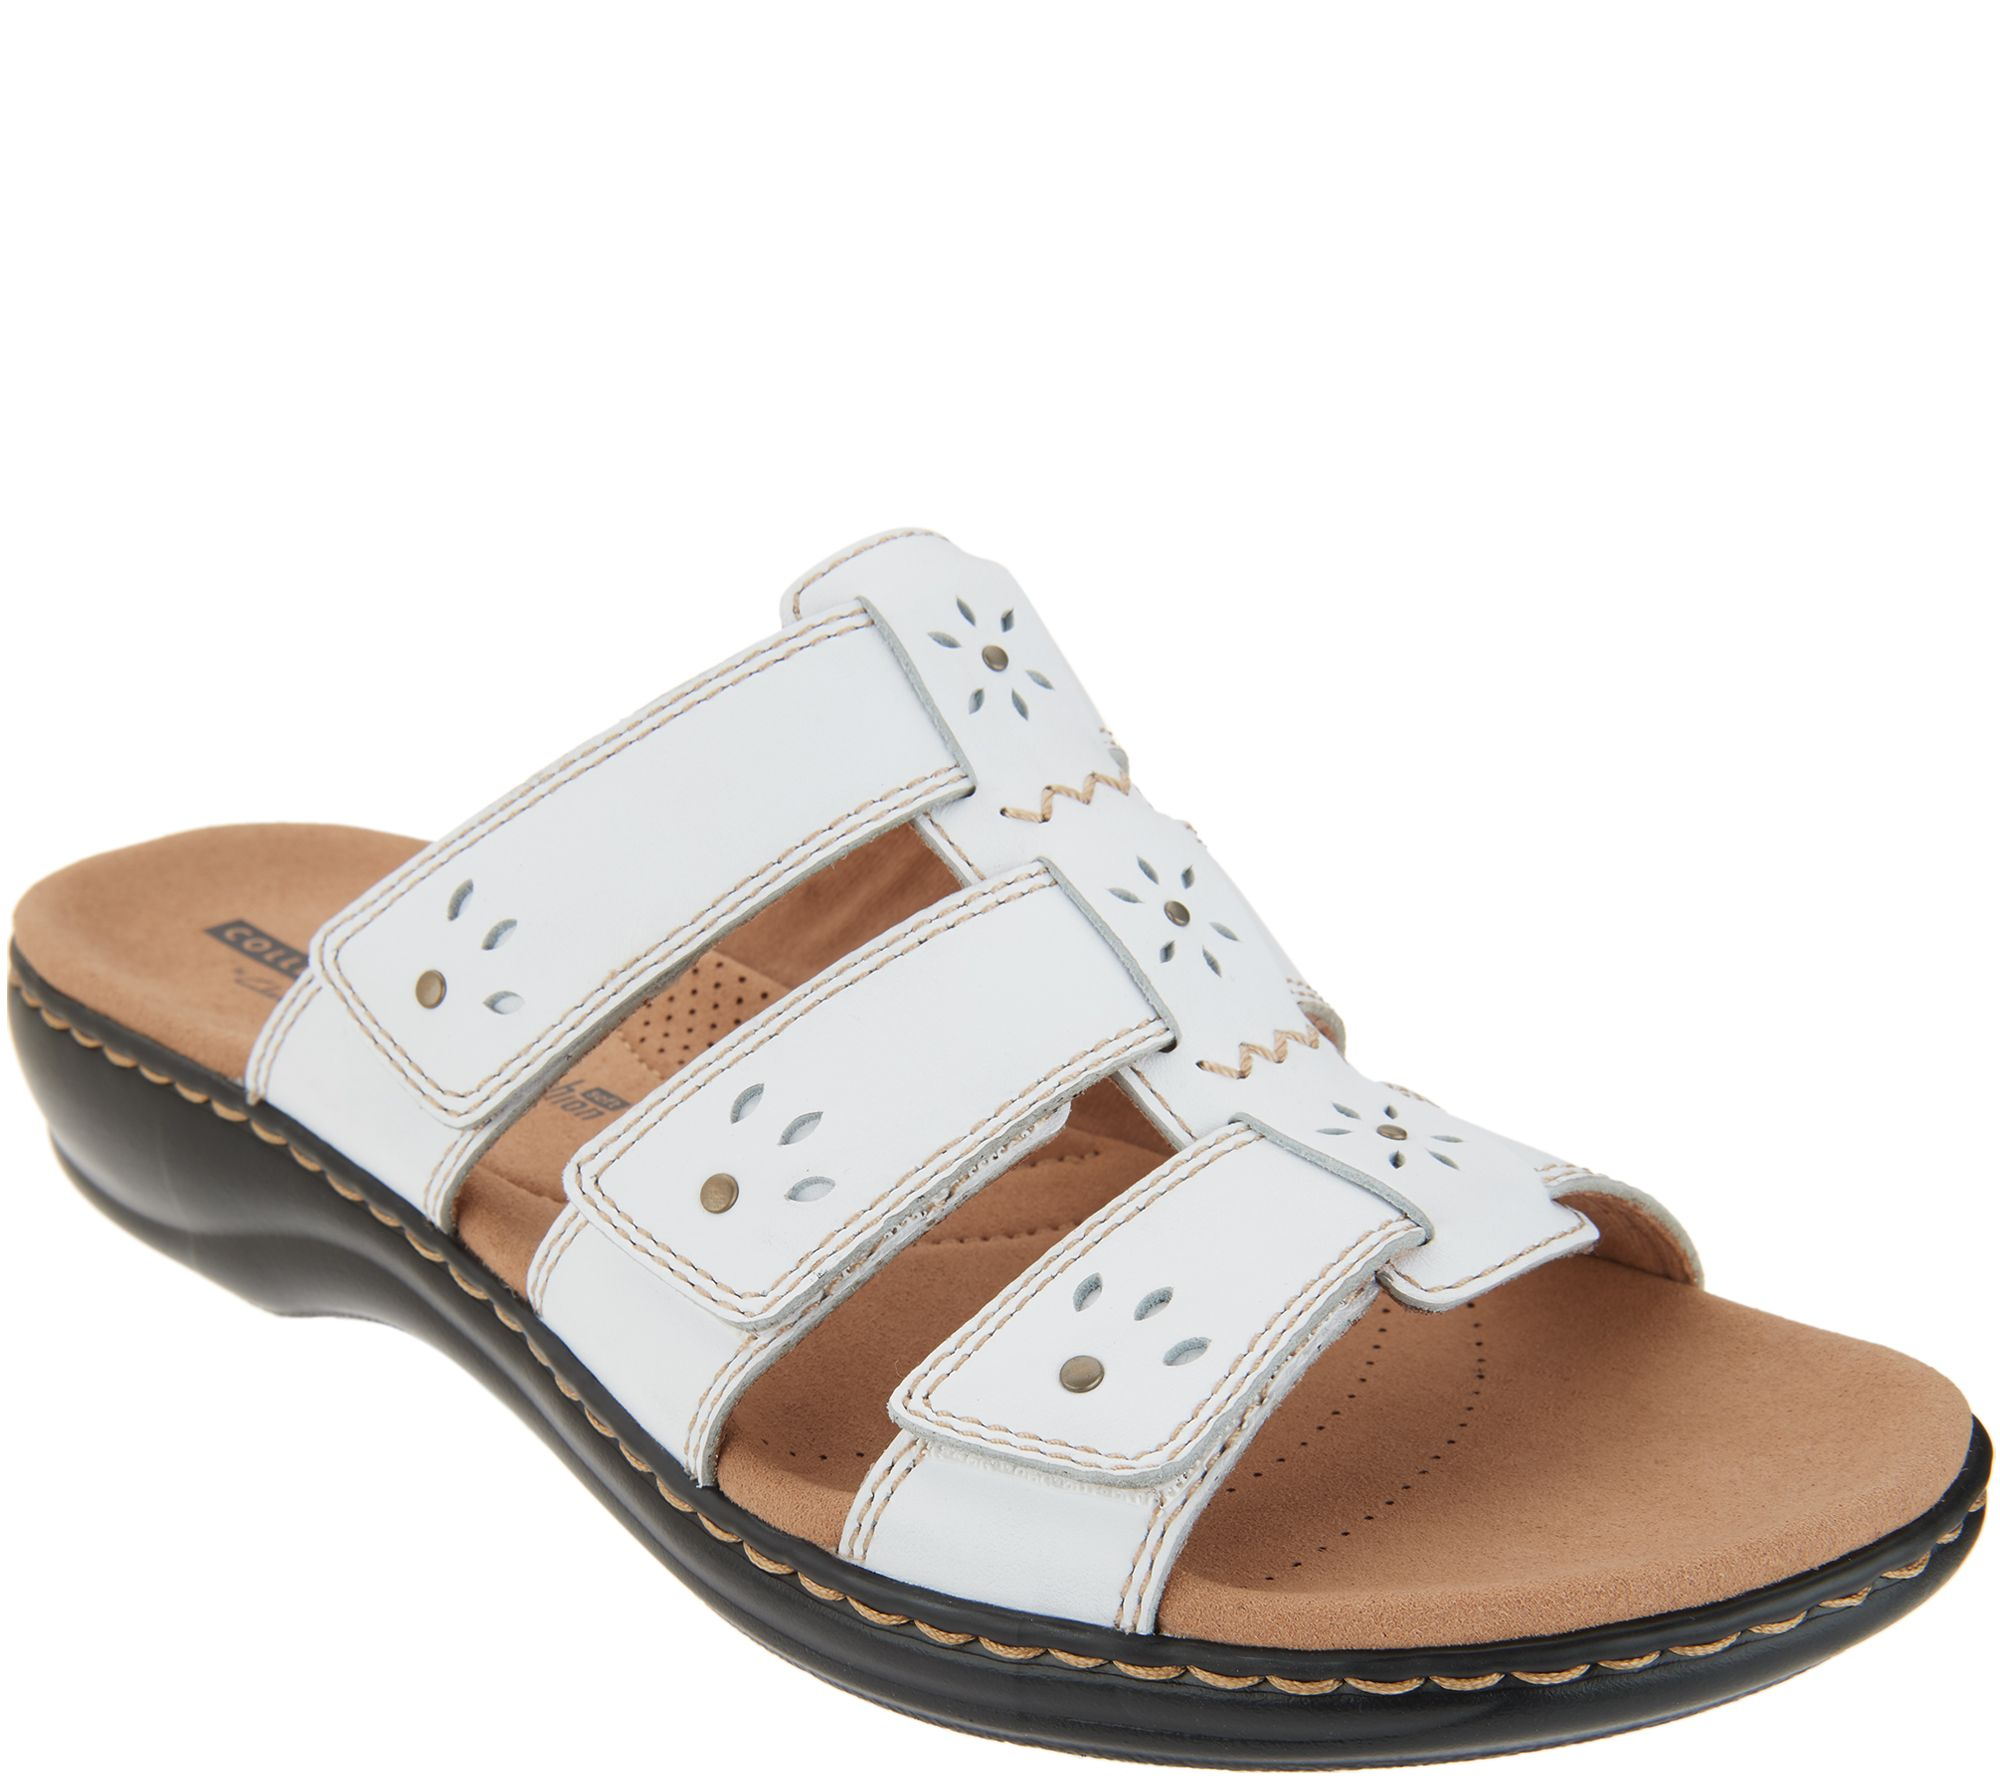 f7cf66f33a7c Clarks Collection Leather Slide Sandals - Leisa Spring - Page 1 — QVC.com